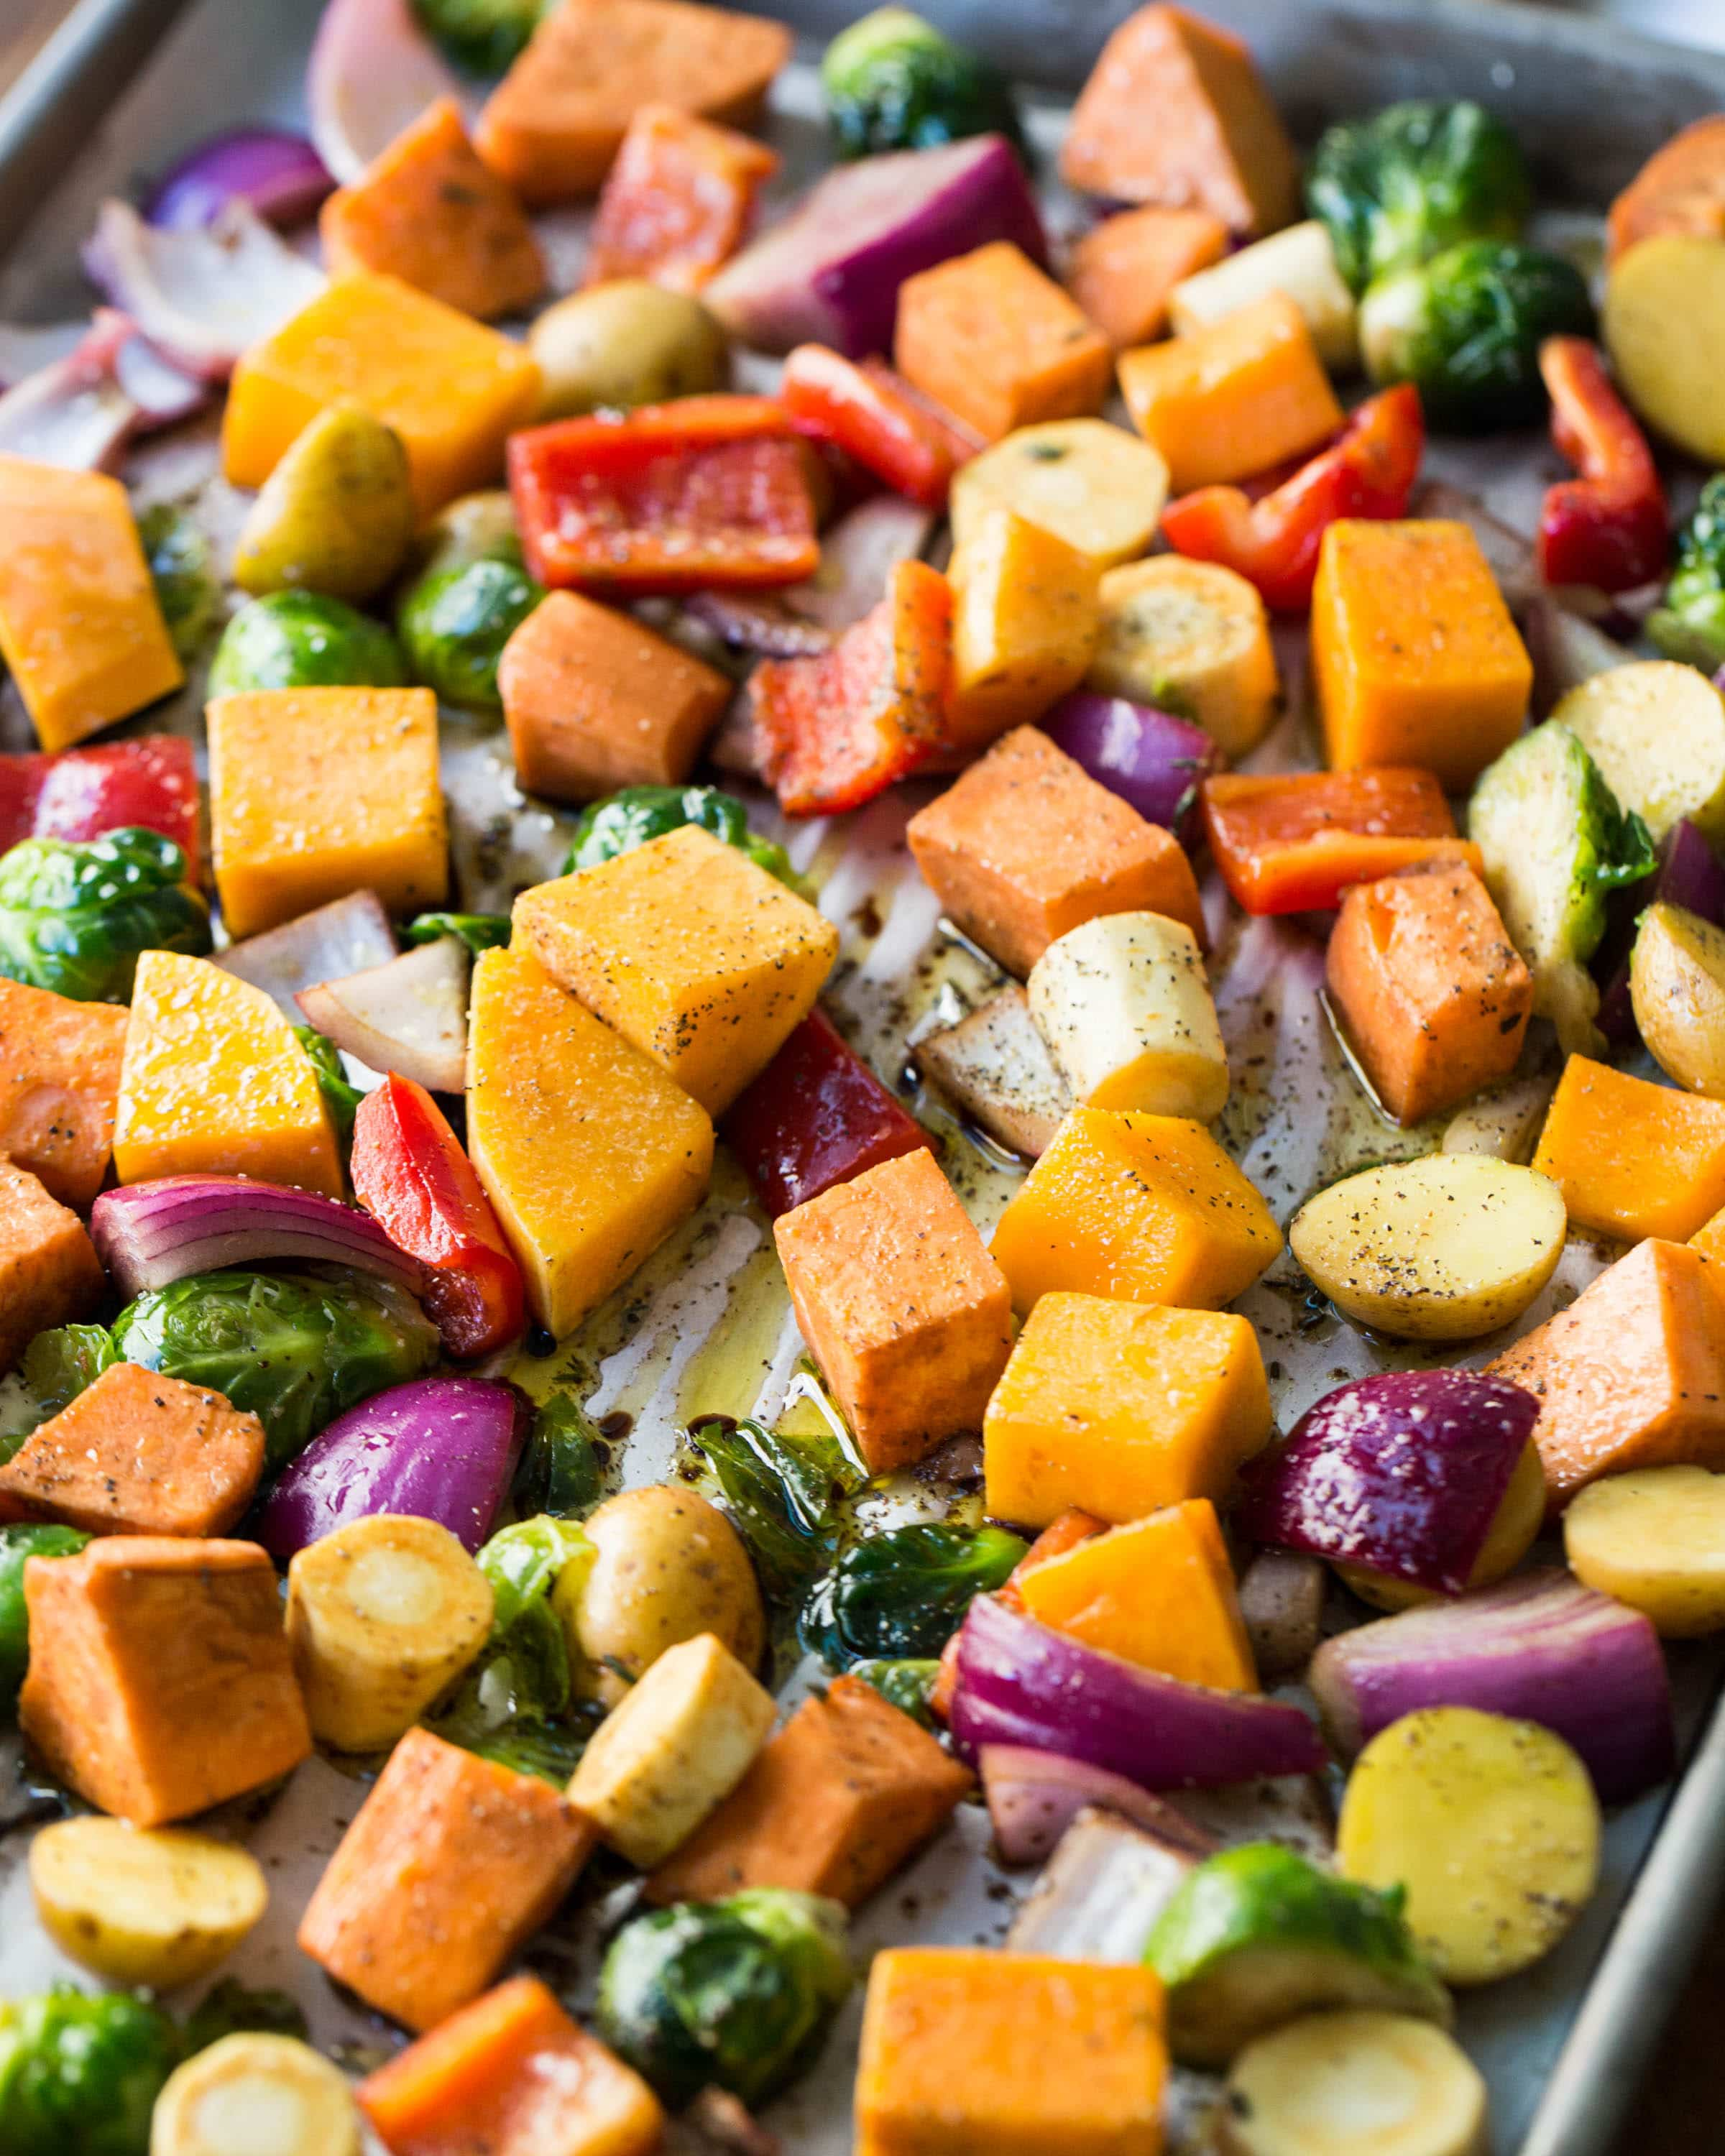 14 Amazing Roasted Vegetable Recipes: Load of appetizing roasted vegetables recipes, plus 5 Tips on different ways to use them all week long! #vegetables #roastedvegetables